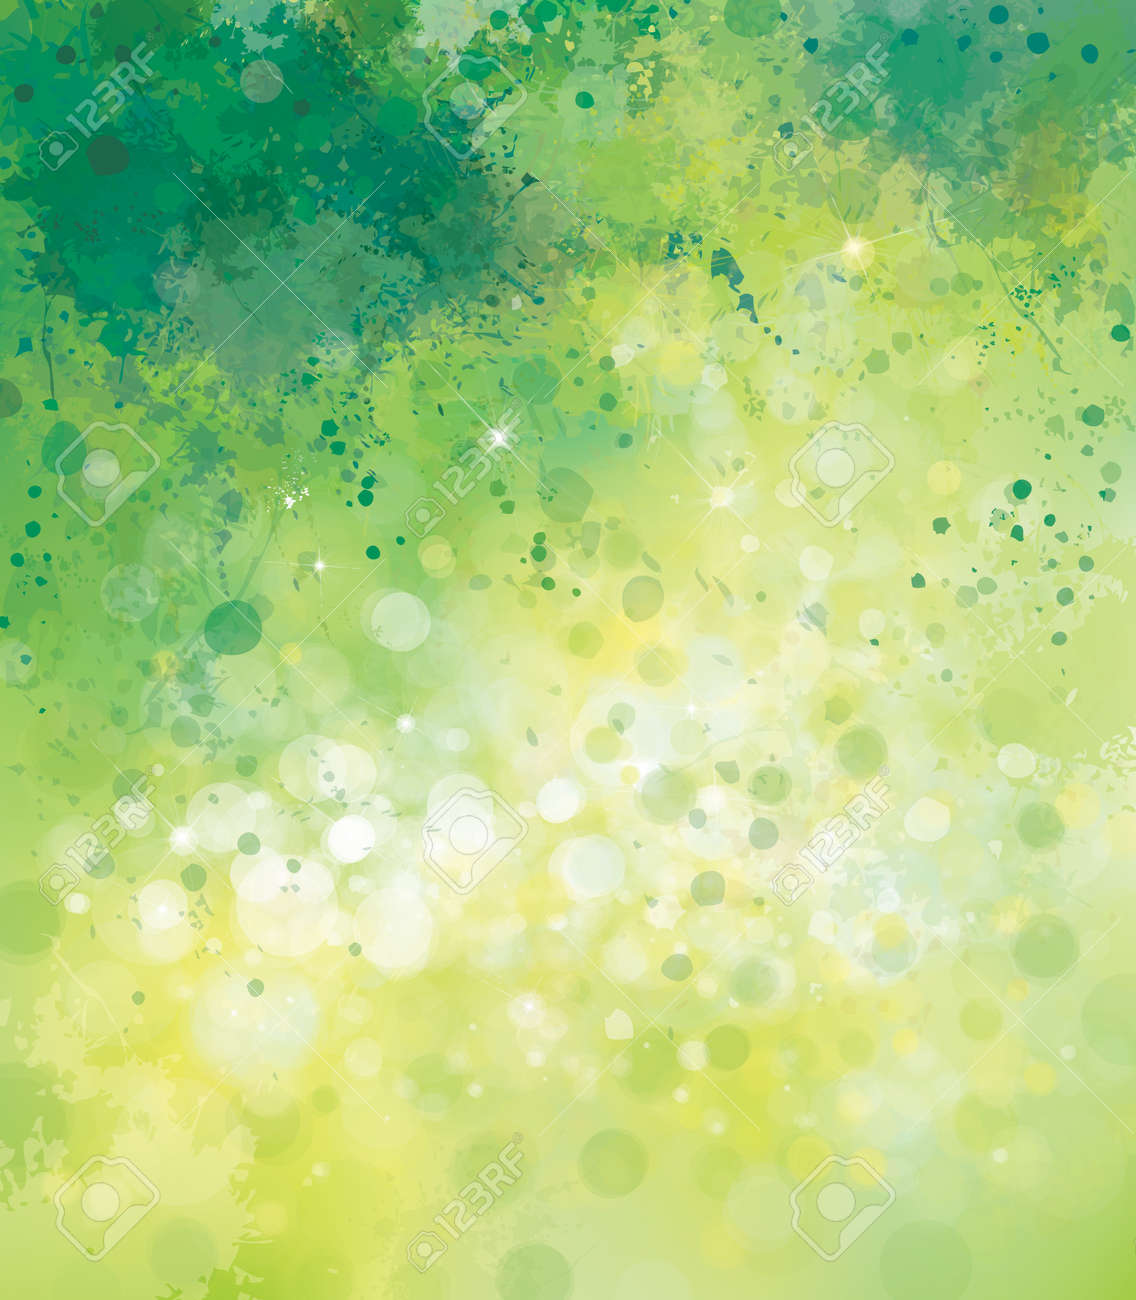 Vector abstract spring background. - 58614548